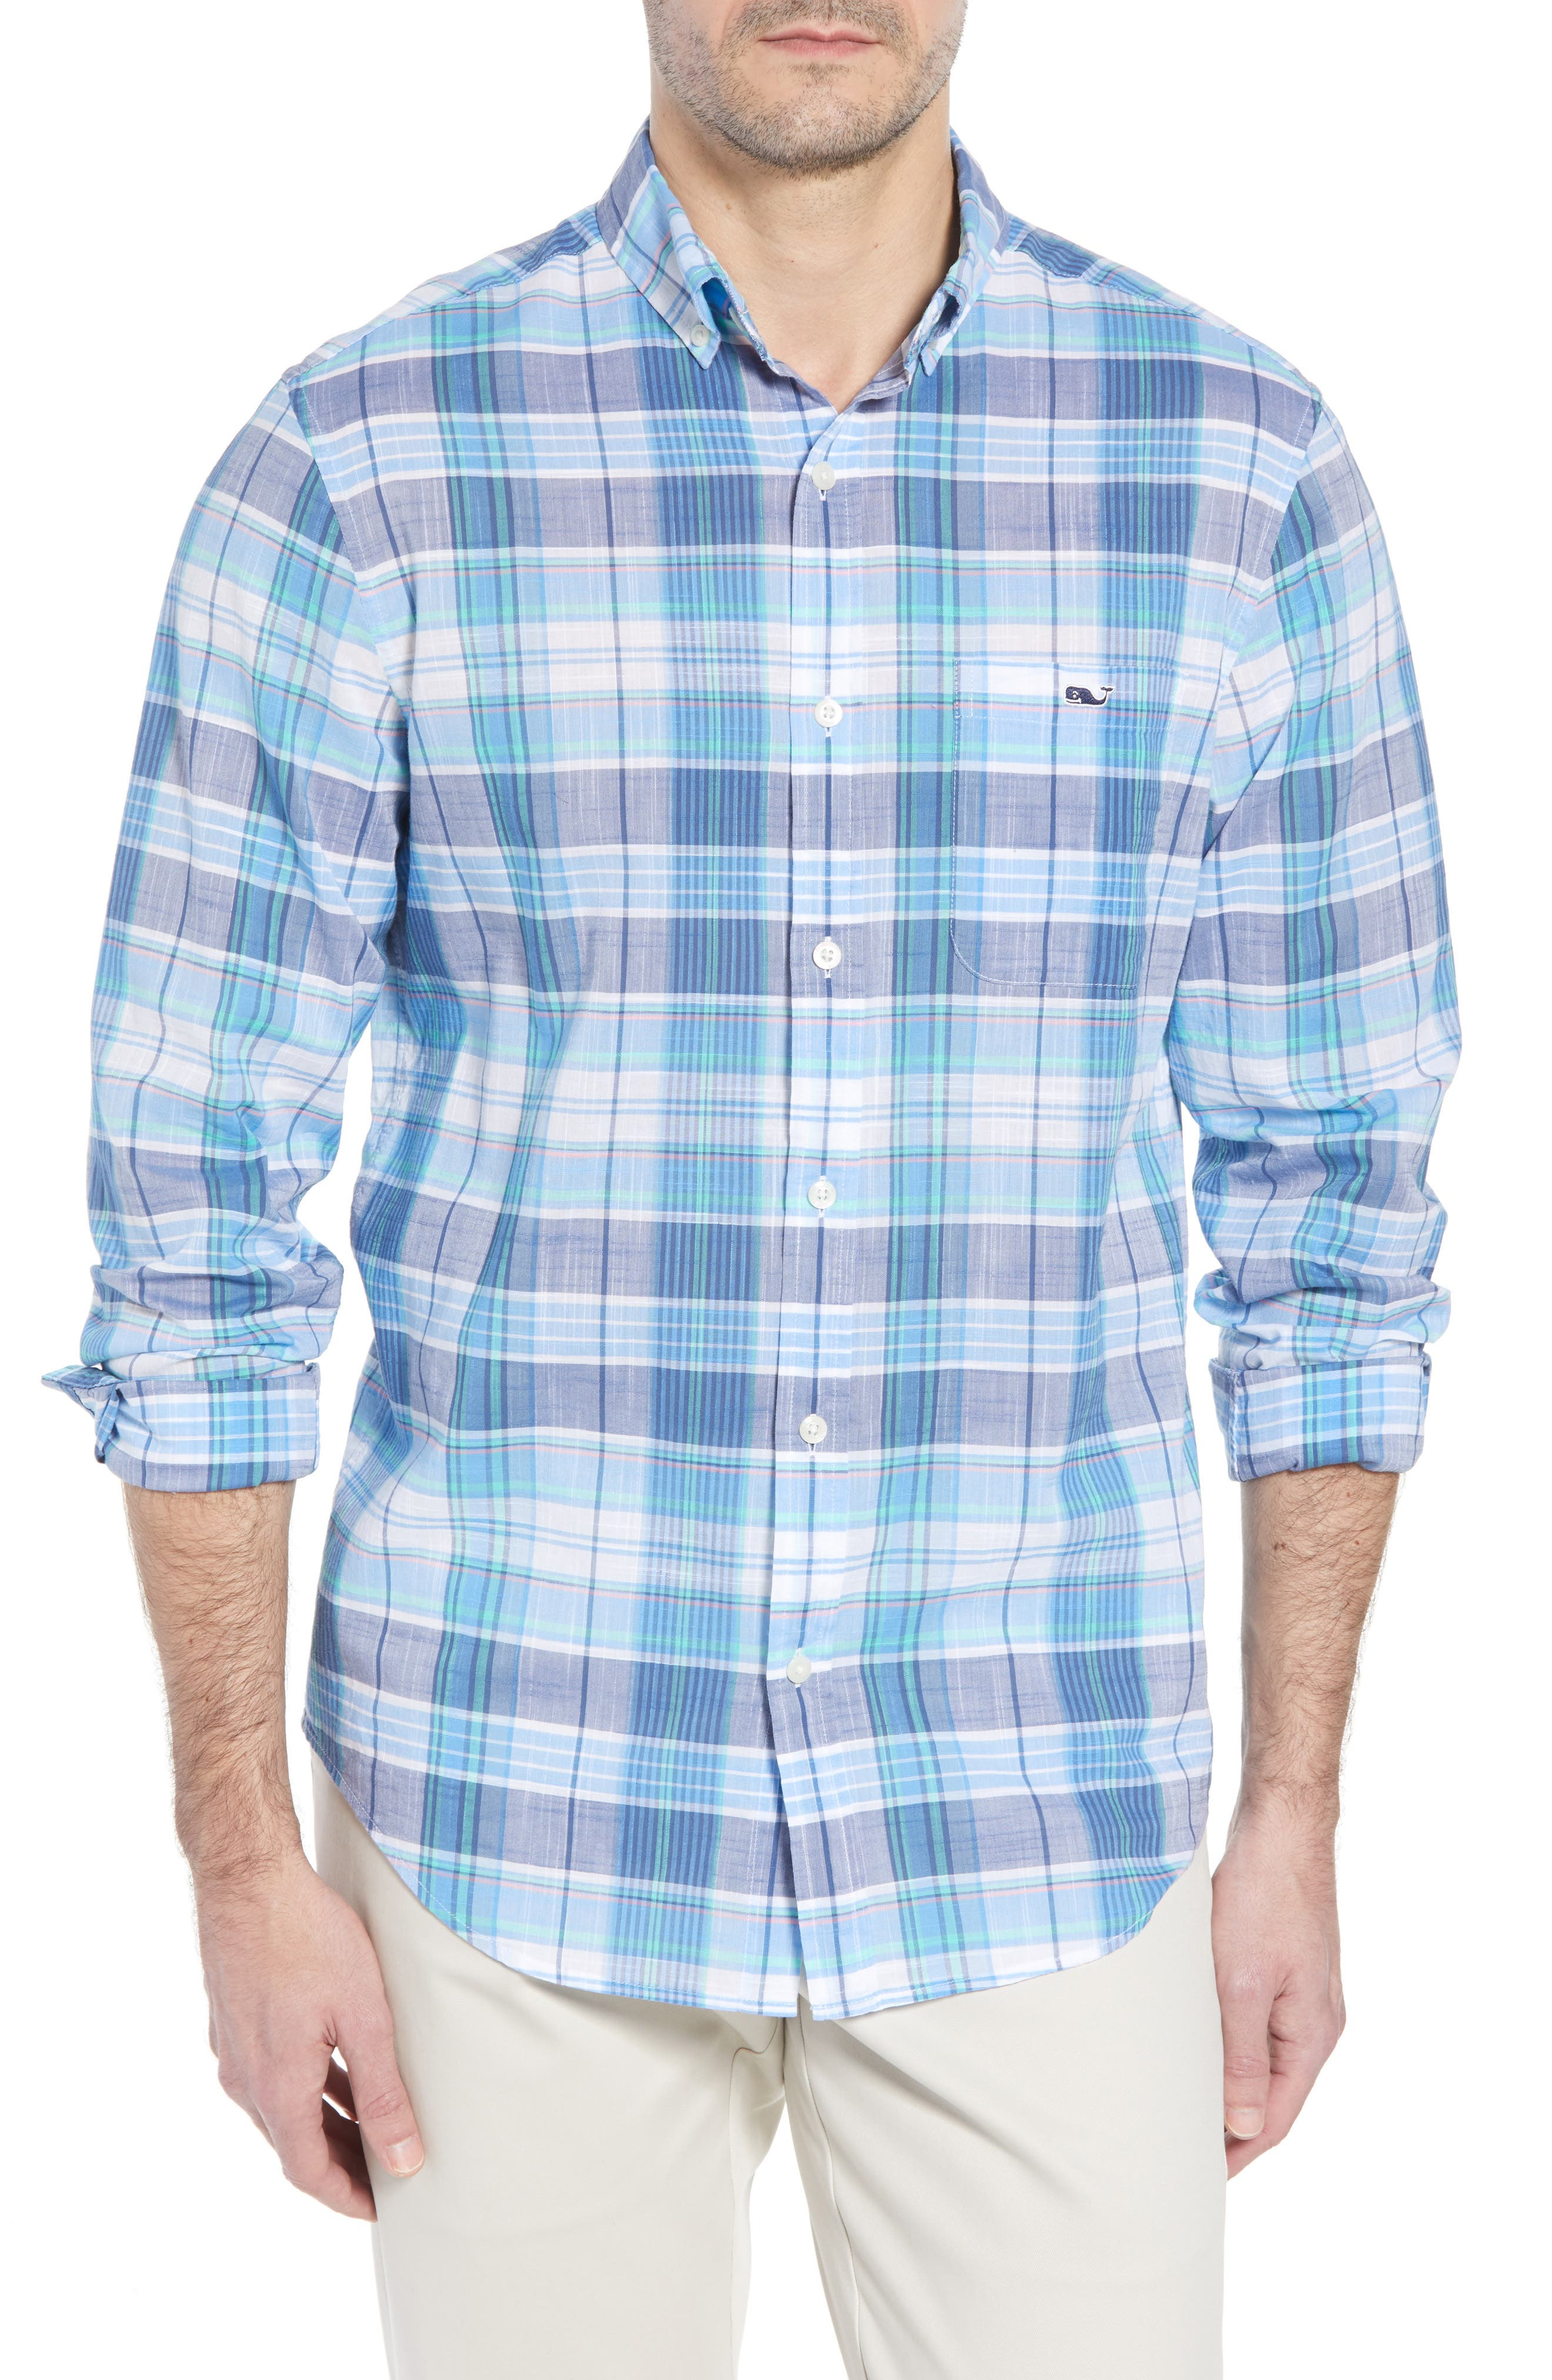 Smith Point Tucker Classic Fit Plaid Sport Shirt,                             Main thumbnail 1, color,                             461